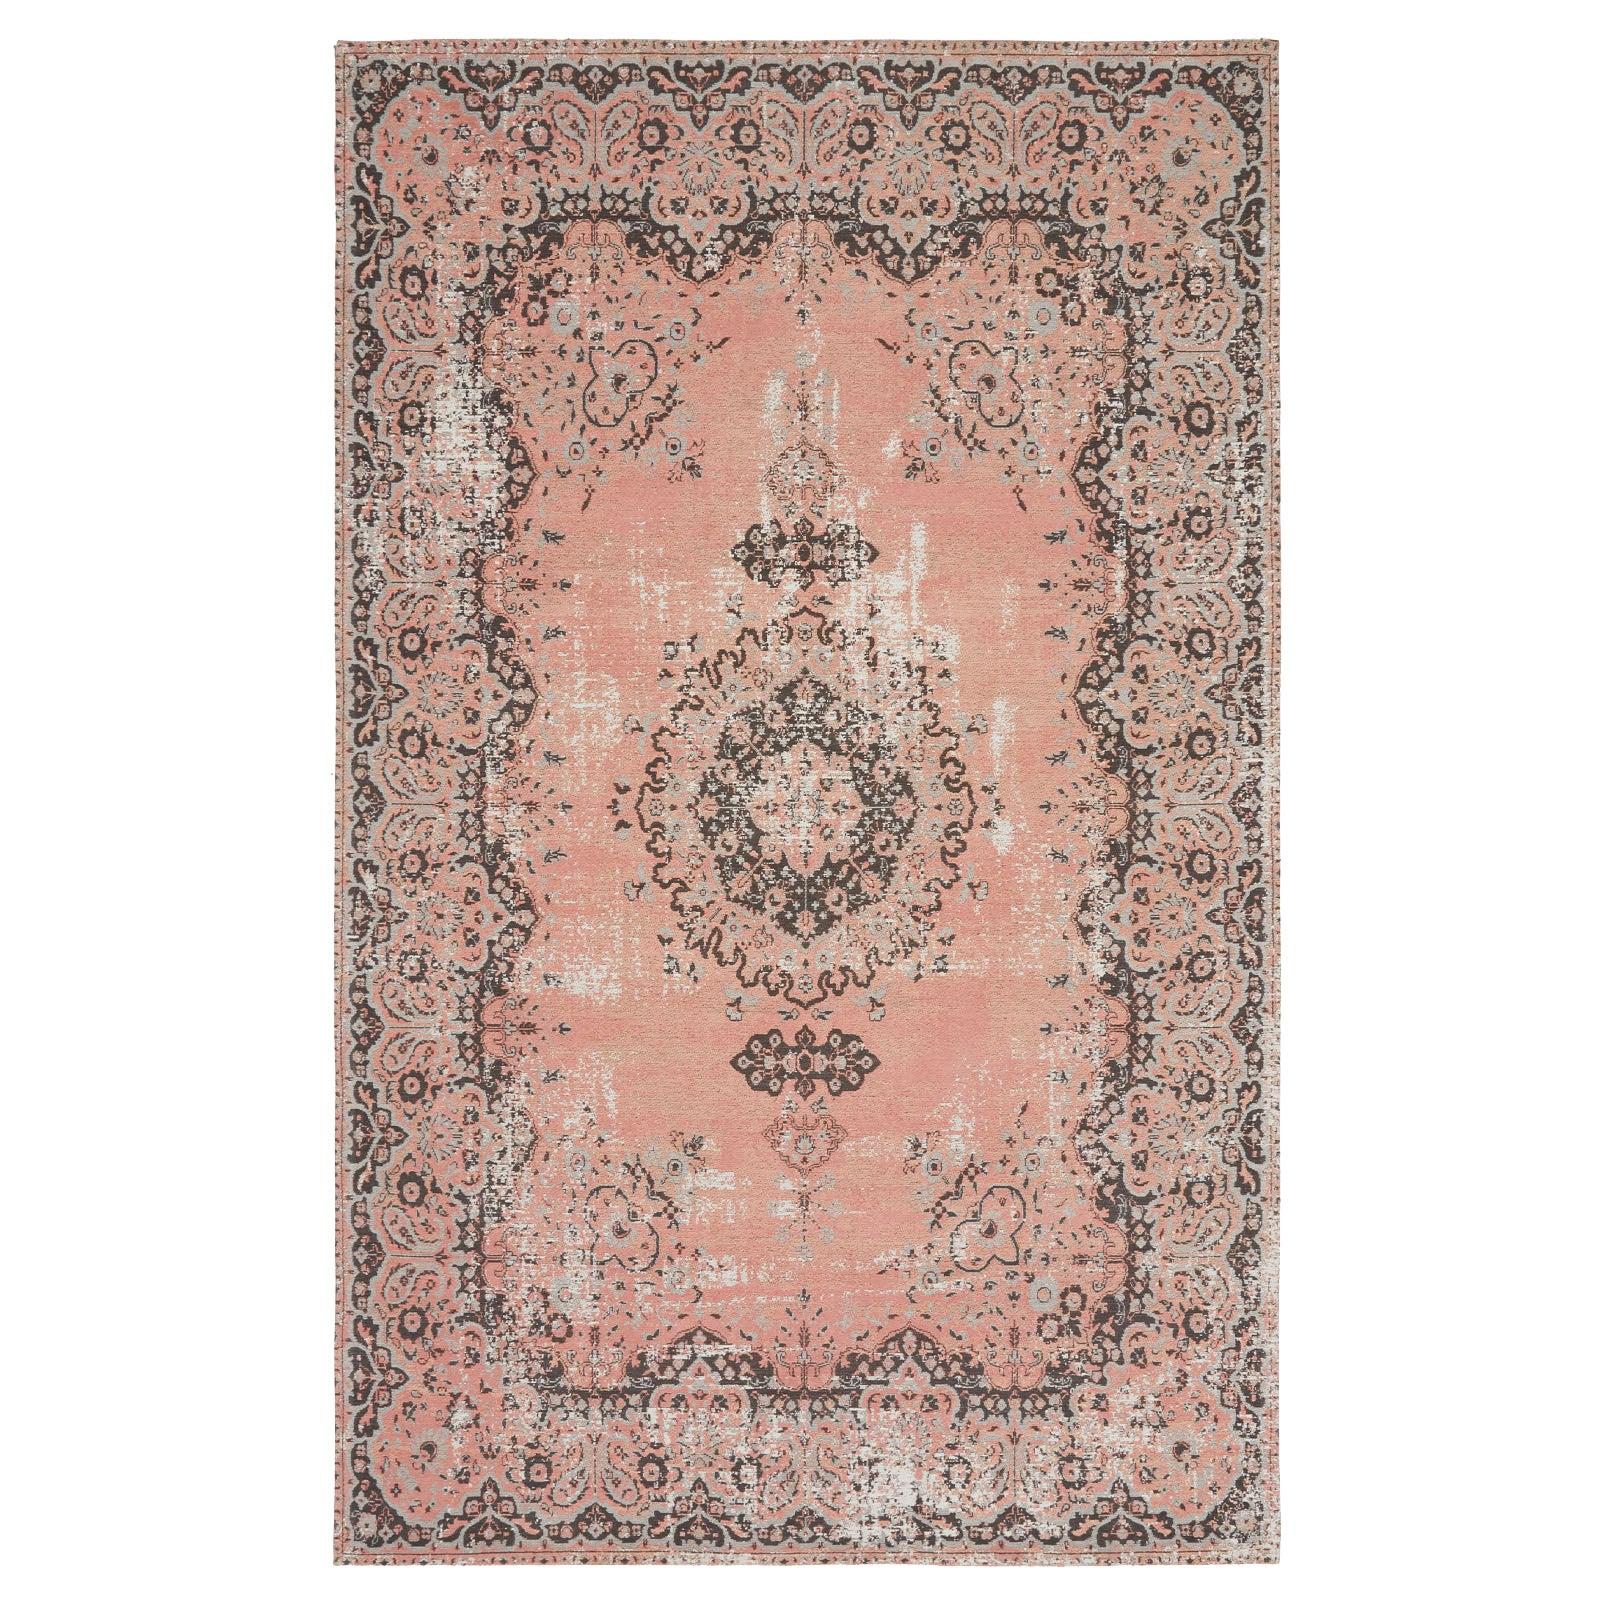 200x300  handmade Rug  Melenia-MX-54-Pink-XL -  200x300 بساط ميلينيا مصنوع يدويًا - Shop Online Furniture and Home Decor Store in Dubai, UAE at ebarza